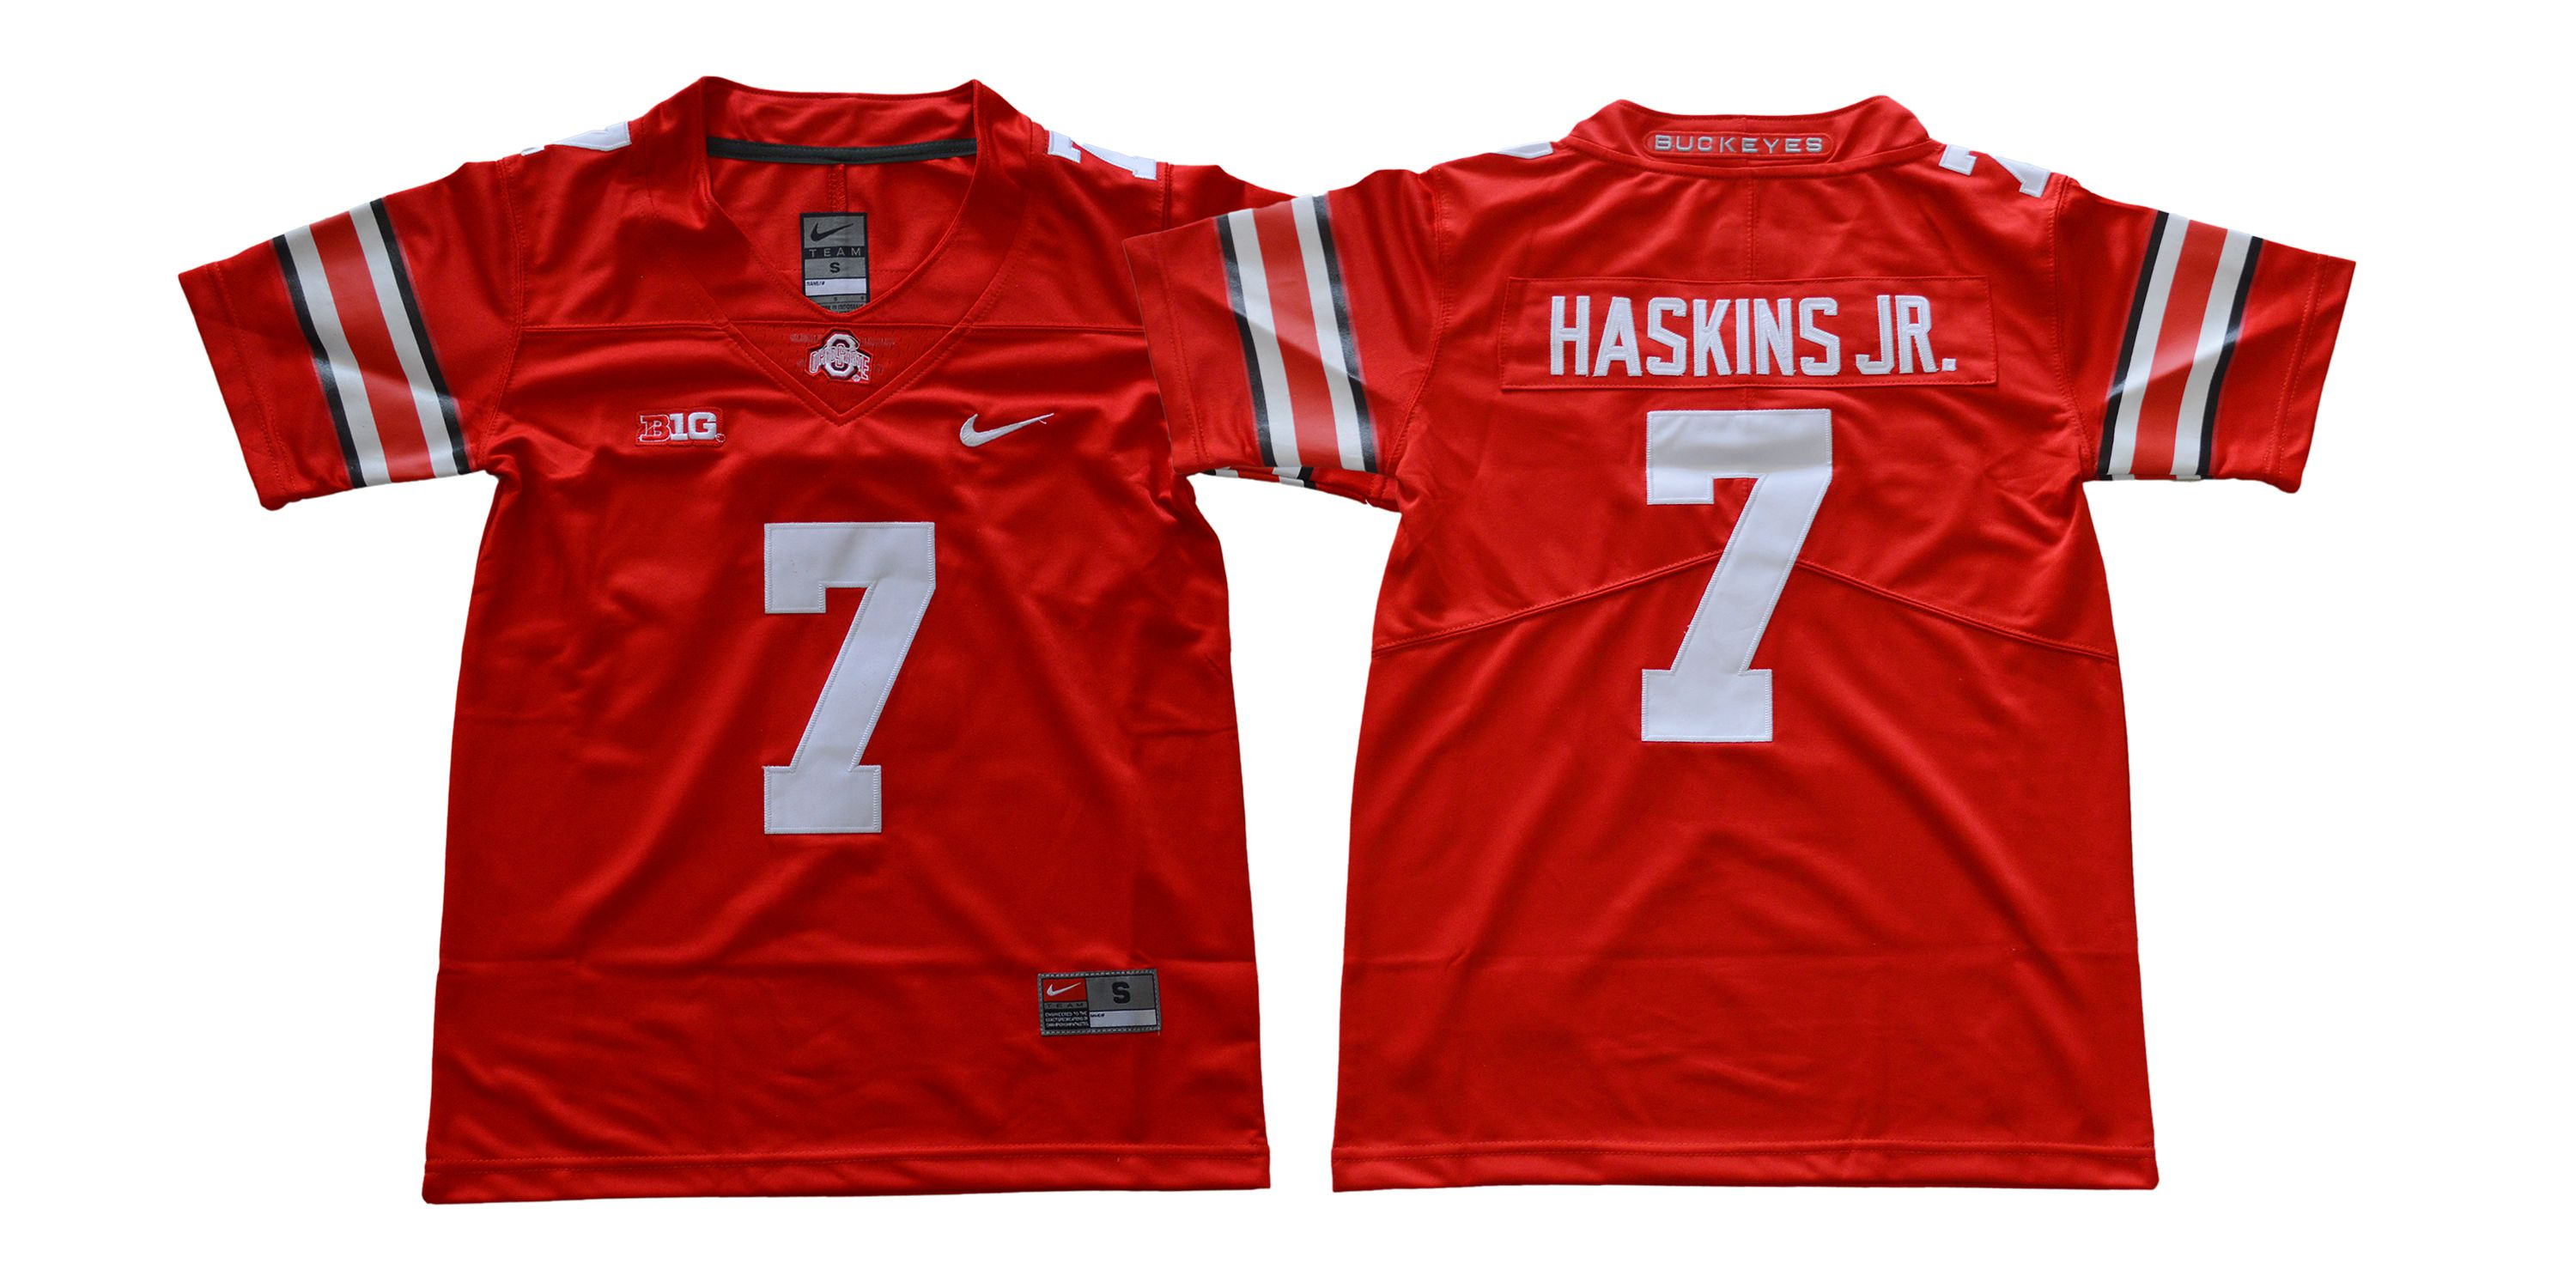 Youth Ohio State Buckeyes 7 Haskins jr Diamond Red Nike NCAA Jerseys